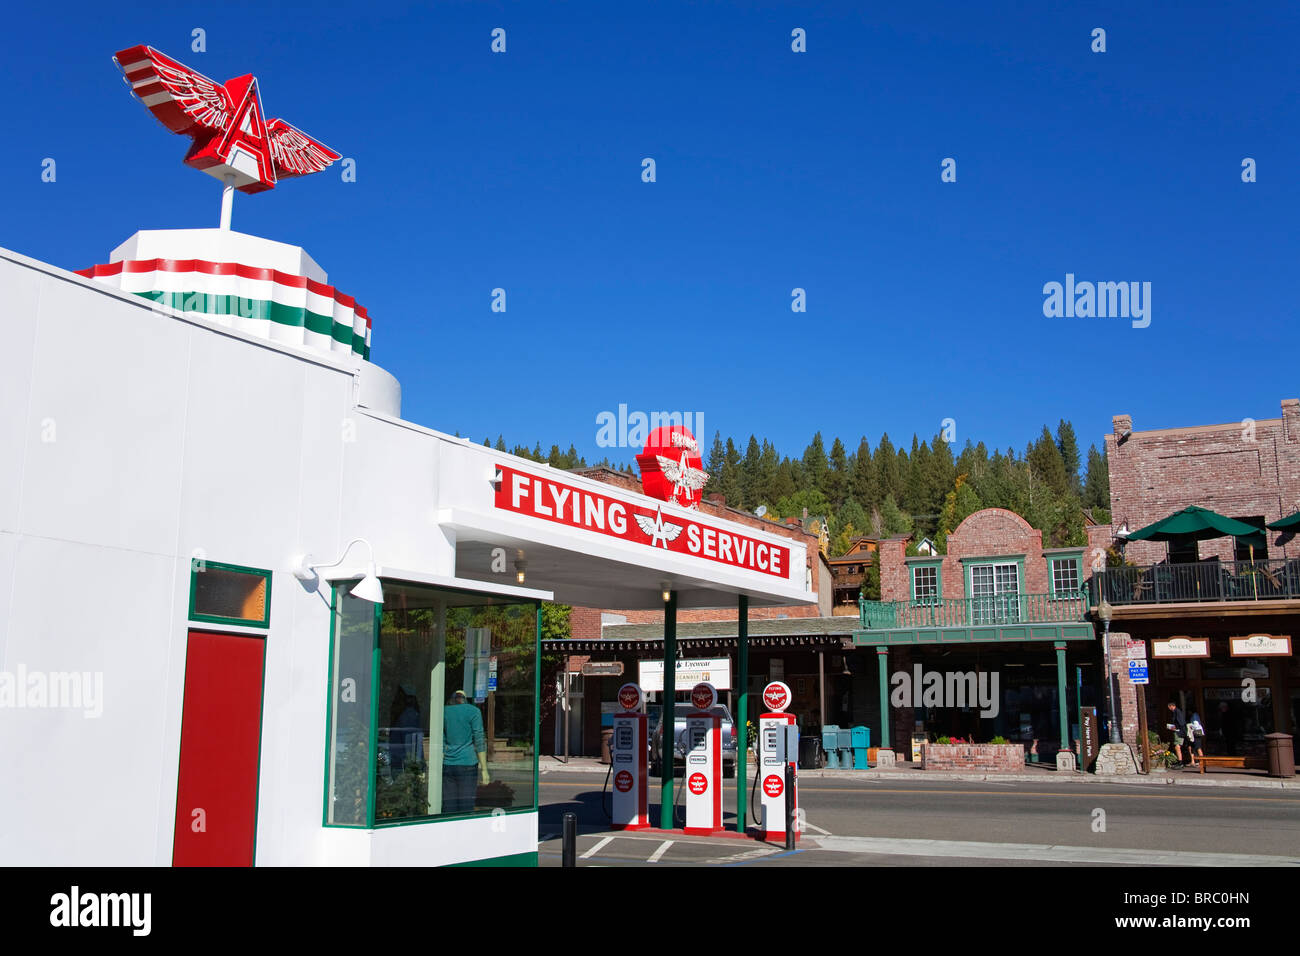 Historic Flying A Gas Station in Truckee, California, USA - Stock Image